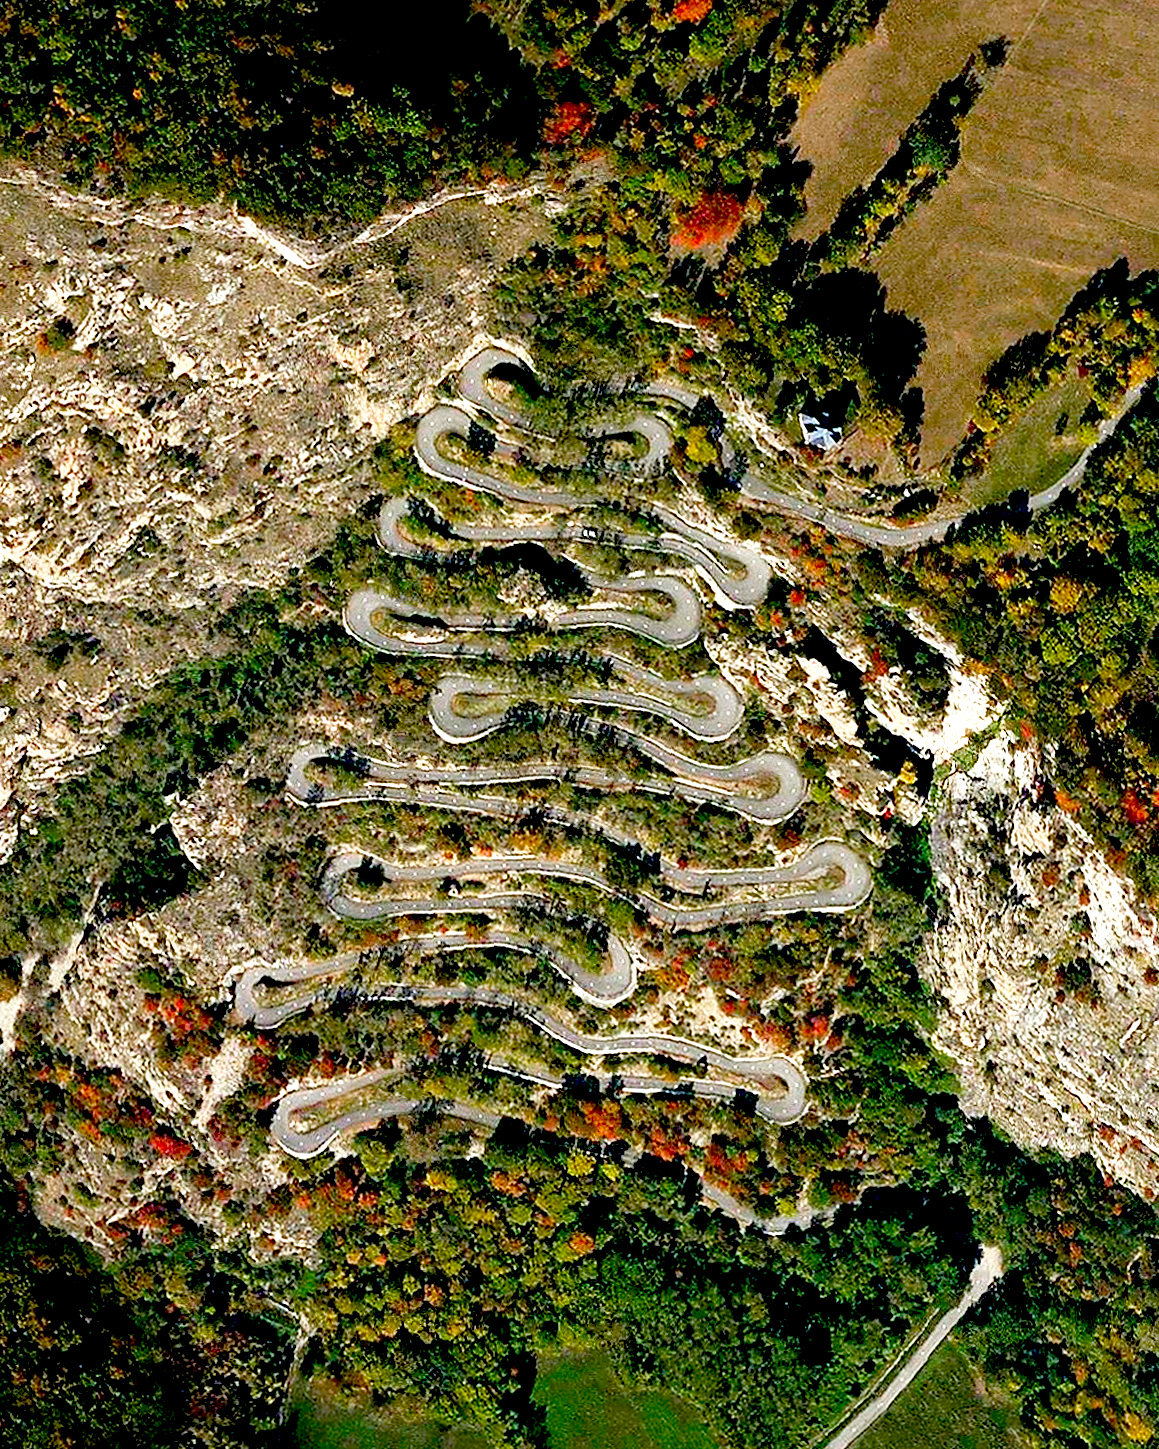 """On Thursday, cyclists racing in the Tour de France completed Stage 12 of the race, passing through the 18 hairpin turns of the Lacets de Montvernier in Montvernier, France. This spectacular climb is 2.1 miles long (3.4 km) and contains a switchback turn every 450 feet (150 m). Welsh cyclist Geraint Thomas, racing for Team Sky, won this stage in just under five hours and 20 minutes.  45°19'03.4""""N, 6°20'14.6""""E  Source imagery: DigitalGlobe"""